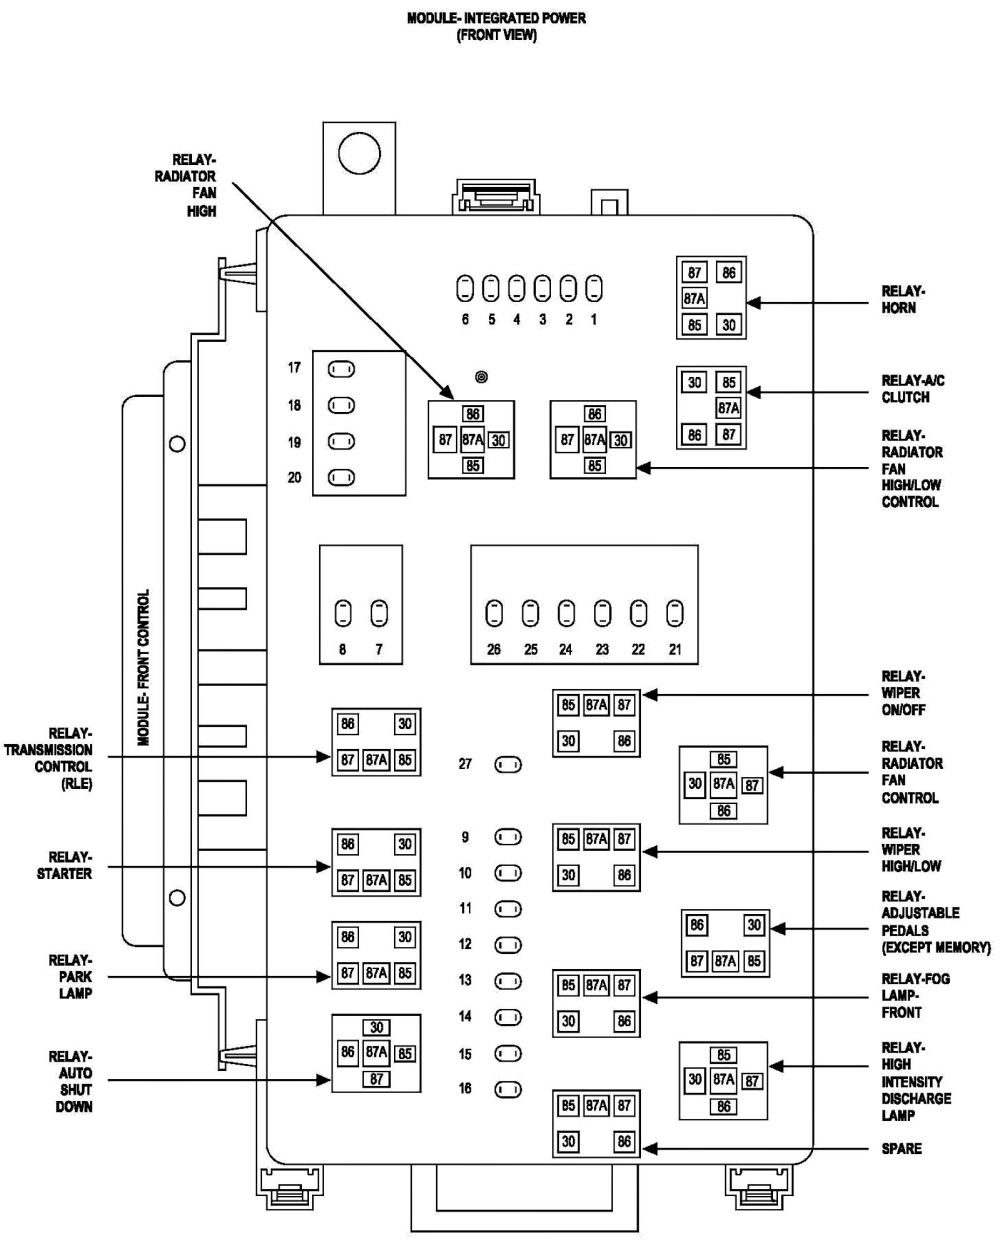 medium resolution of 2009 chrysler sebring fuse diagram wiring diagrams scematic 2004 chrysler sebring on diagram for dodge caravan 2000 2 4l fuse box